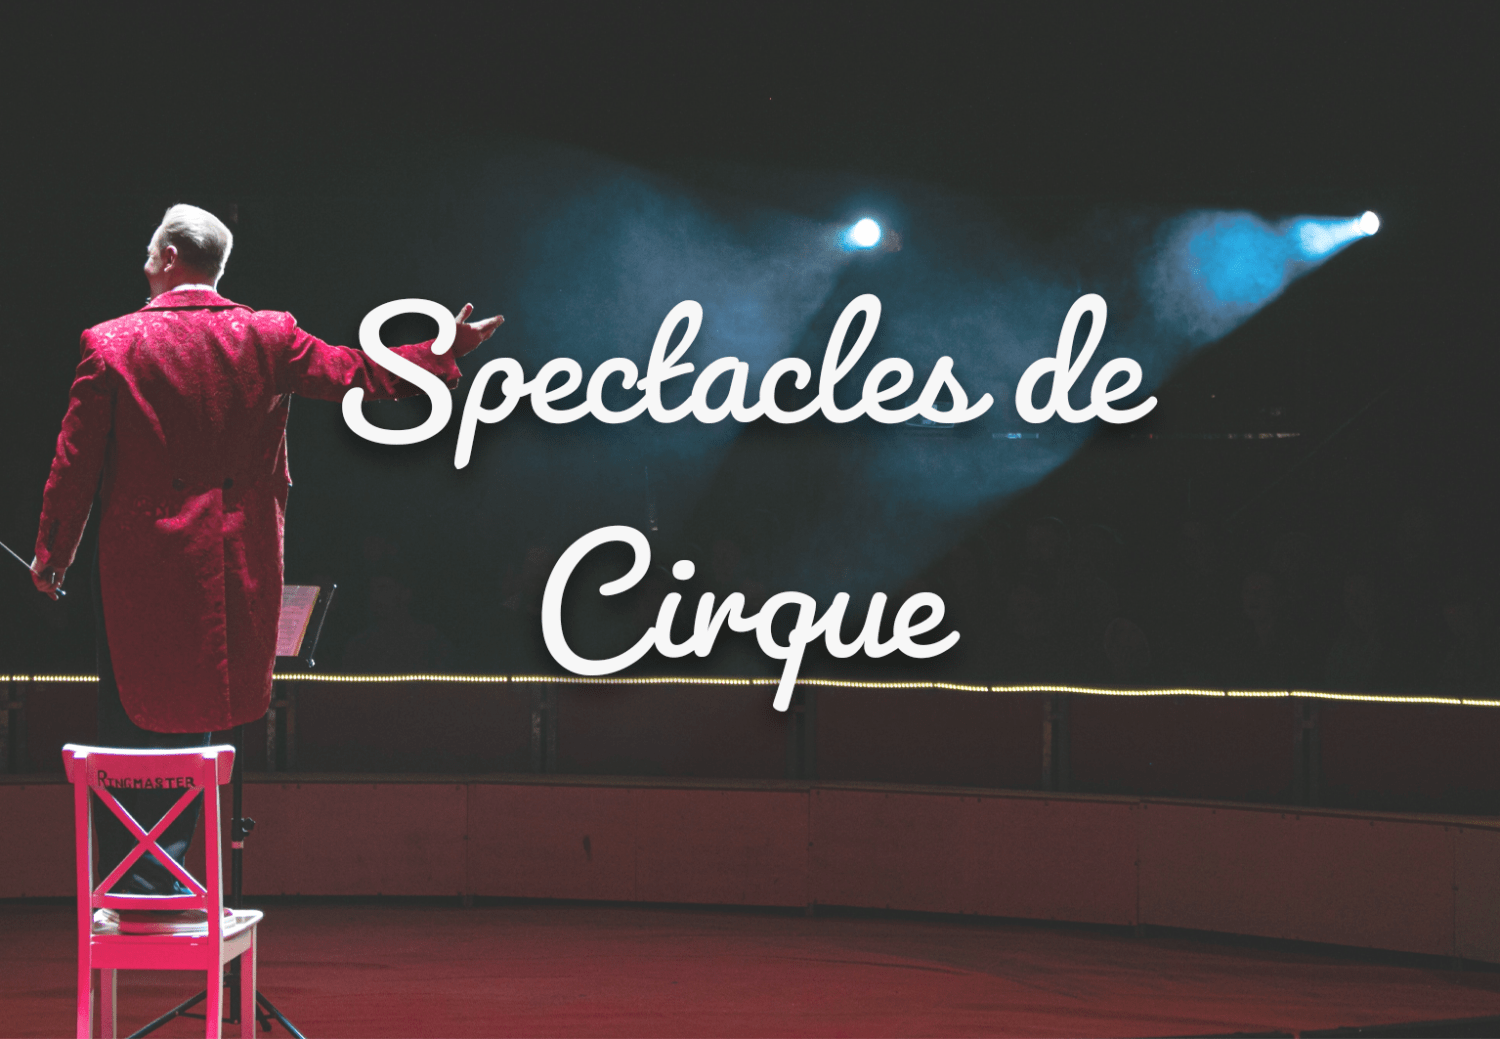 spectacles de cirque